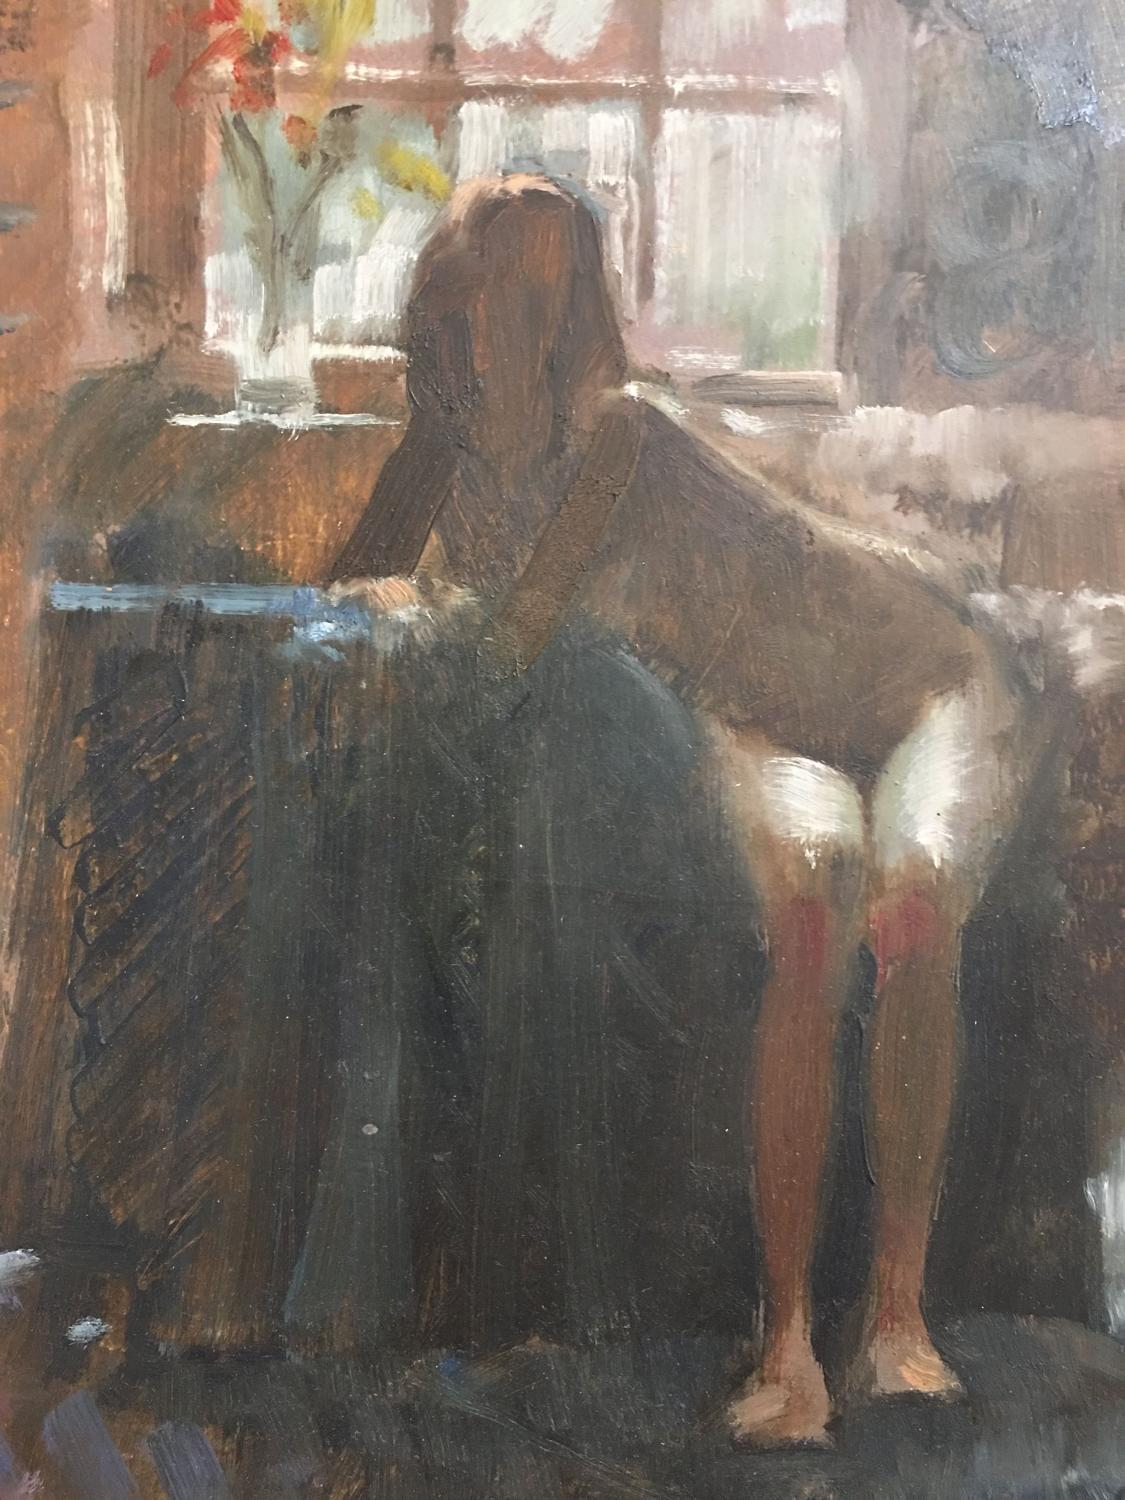 Debbie nude oil by John Richard Haddock